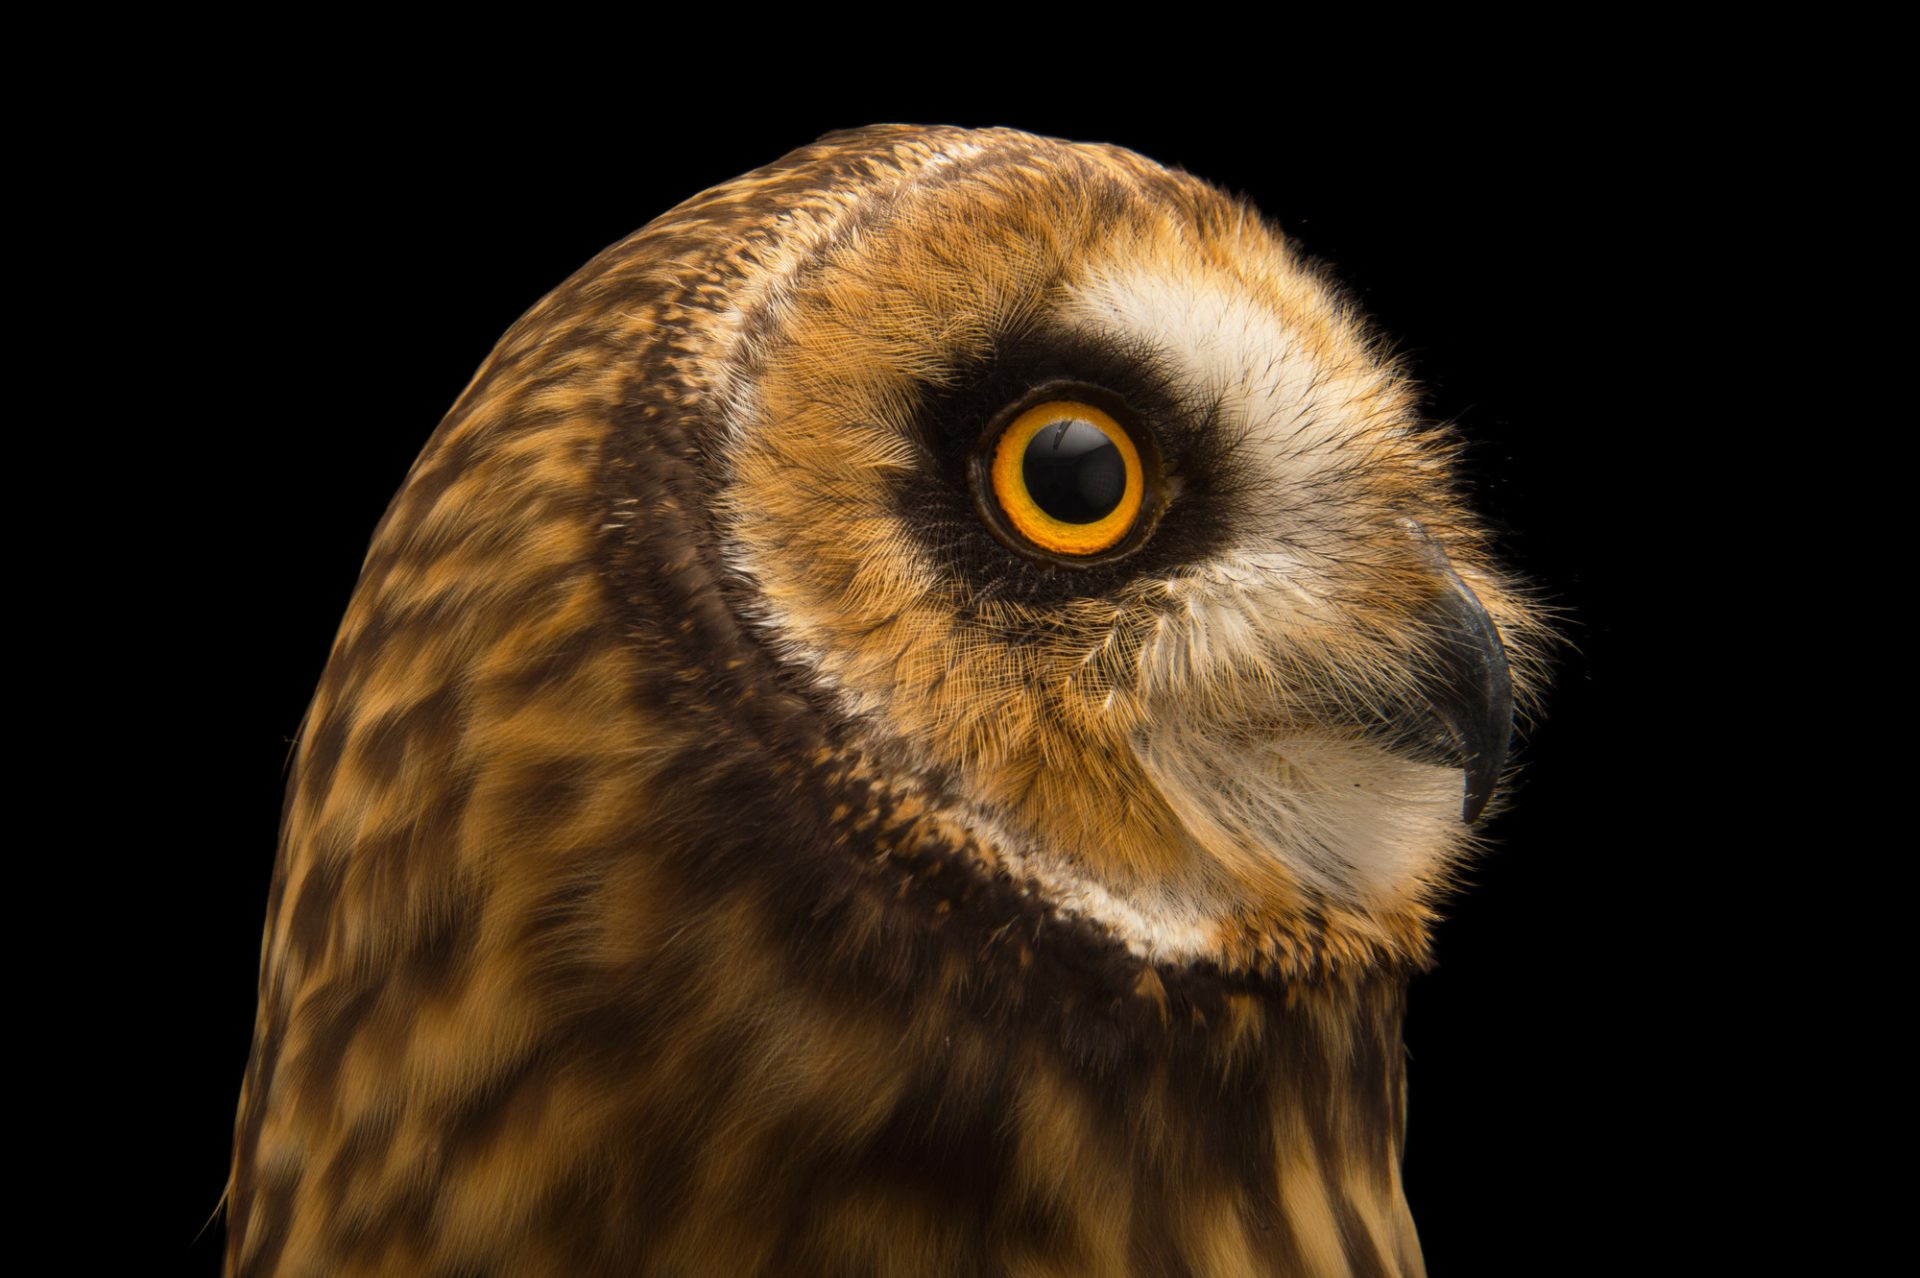 Picture of a short-eared owl (Asio flammeus domingensis) at the Parque Zoologico Nacional in Santo Domingo, Dominican Republic.